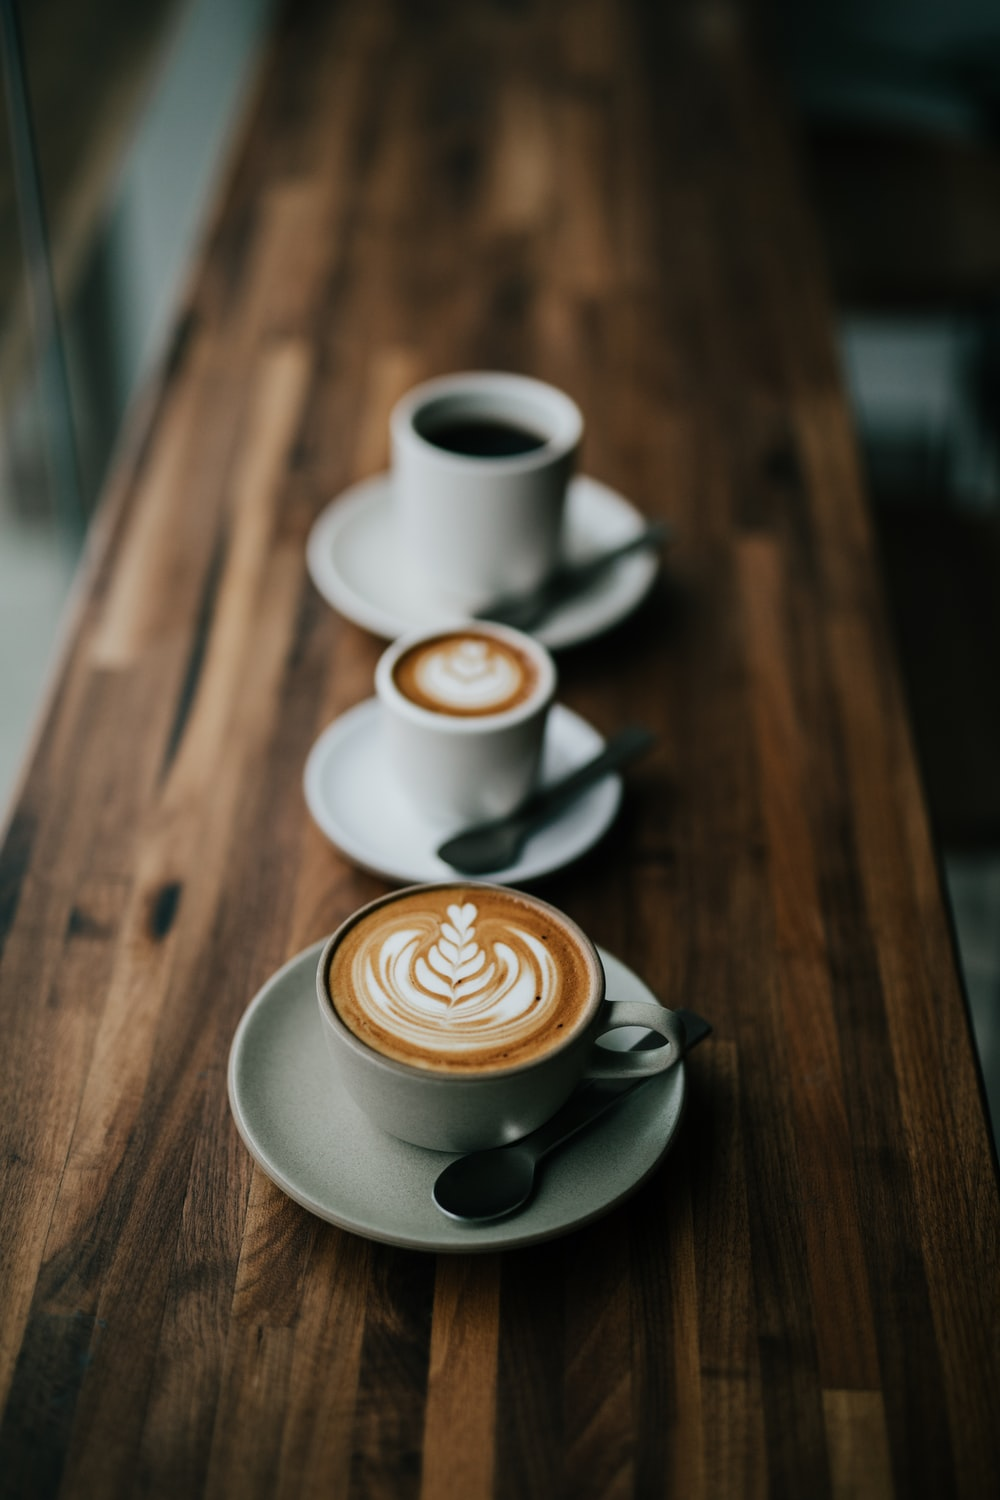 macchiato pictures download free images on unsplash